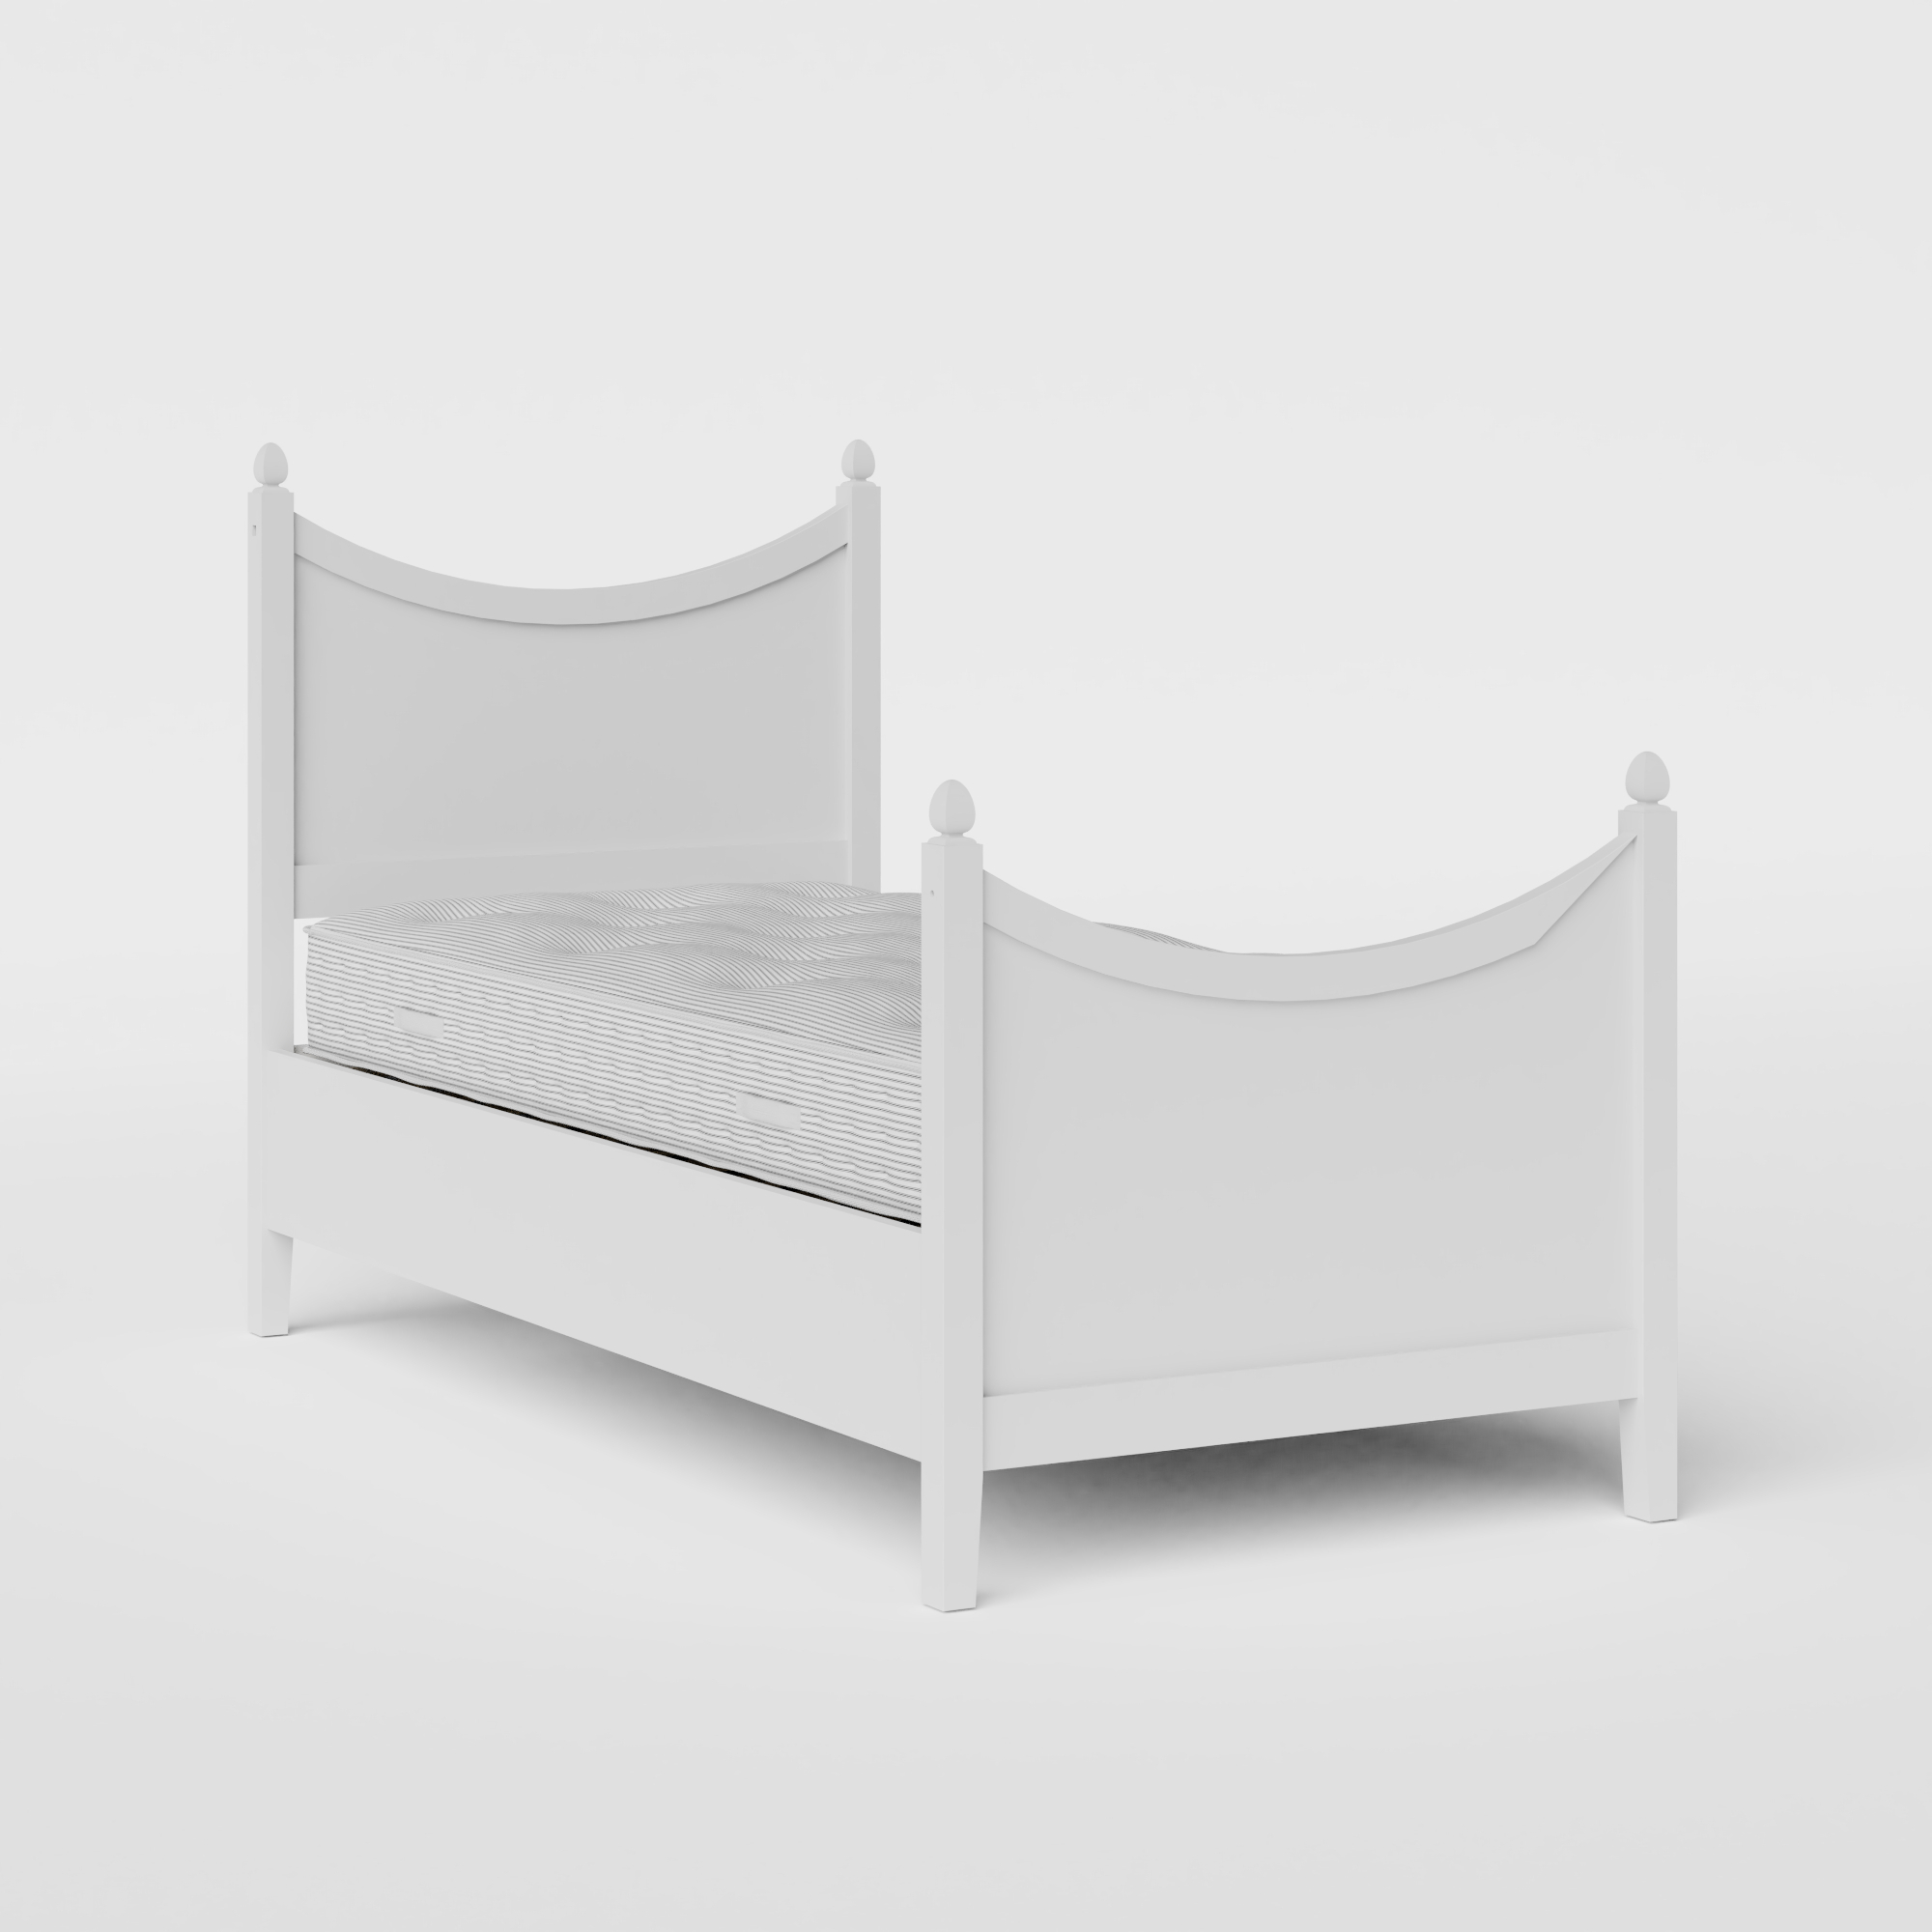 Blake Painted single painted wood bed in white with Juno mattress